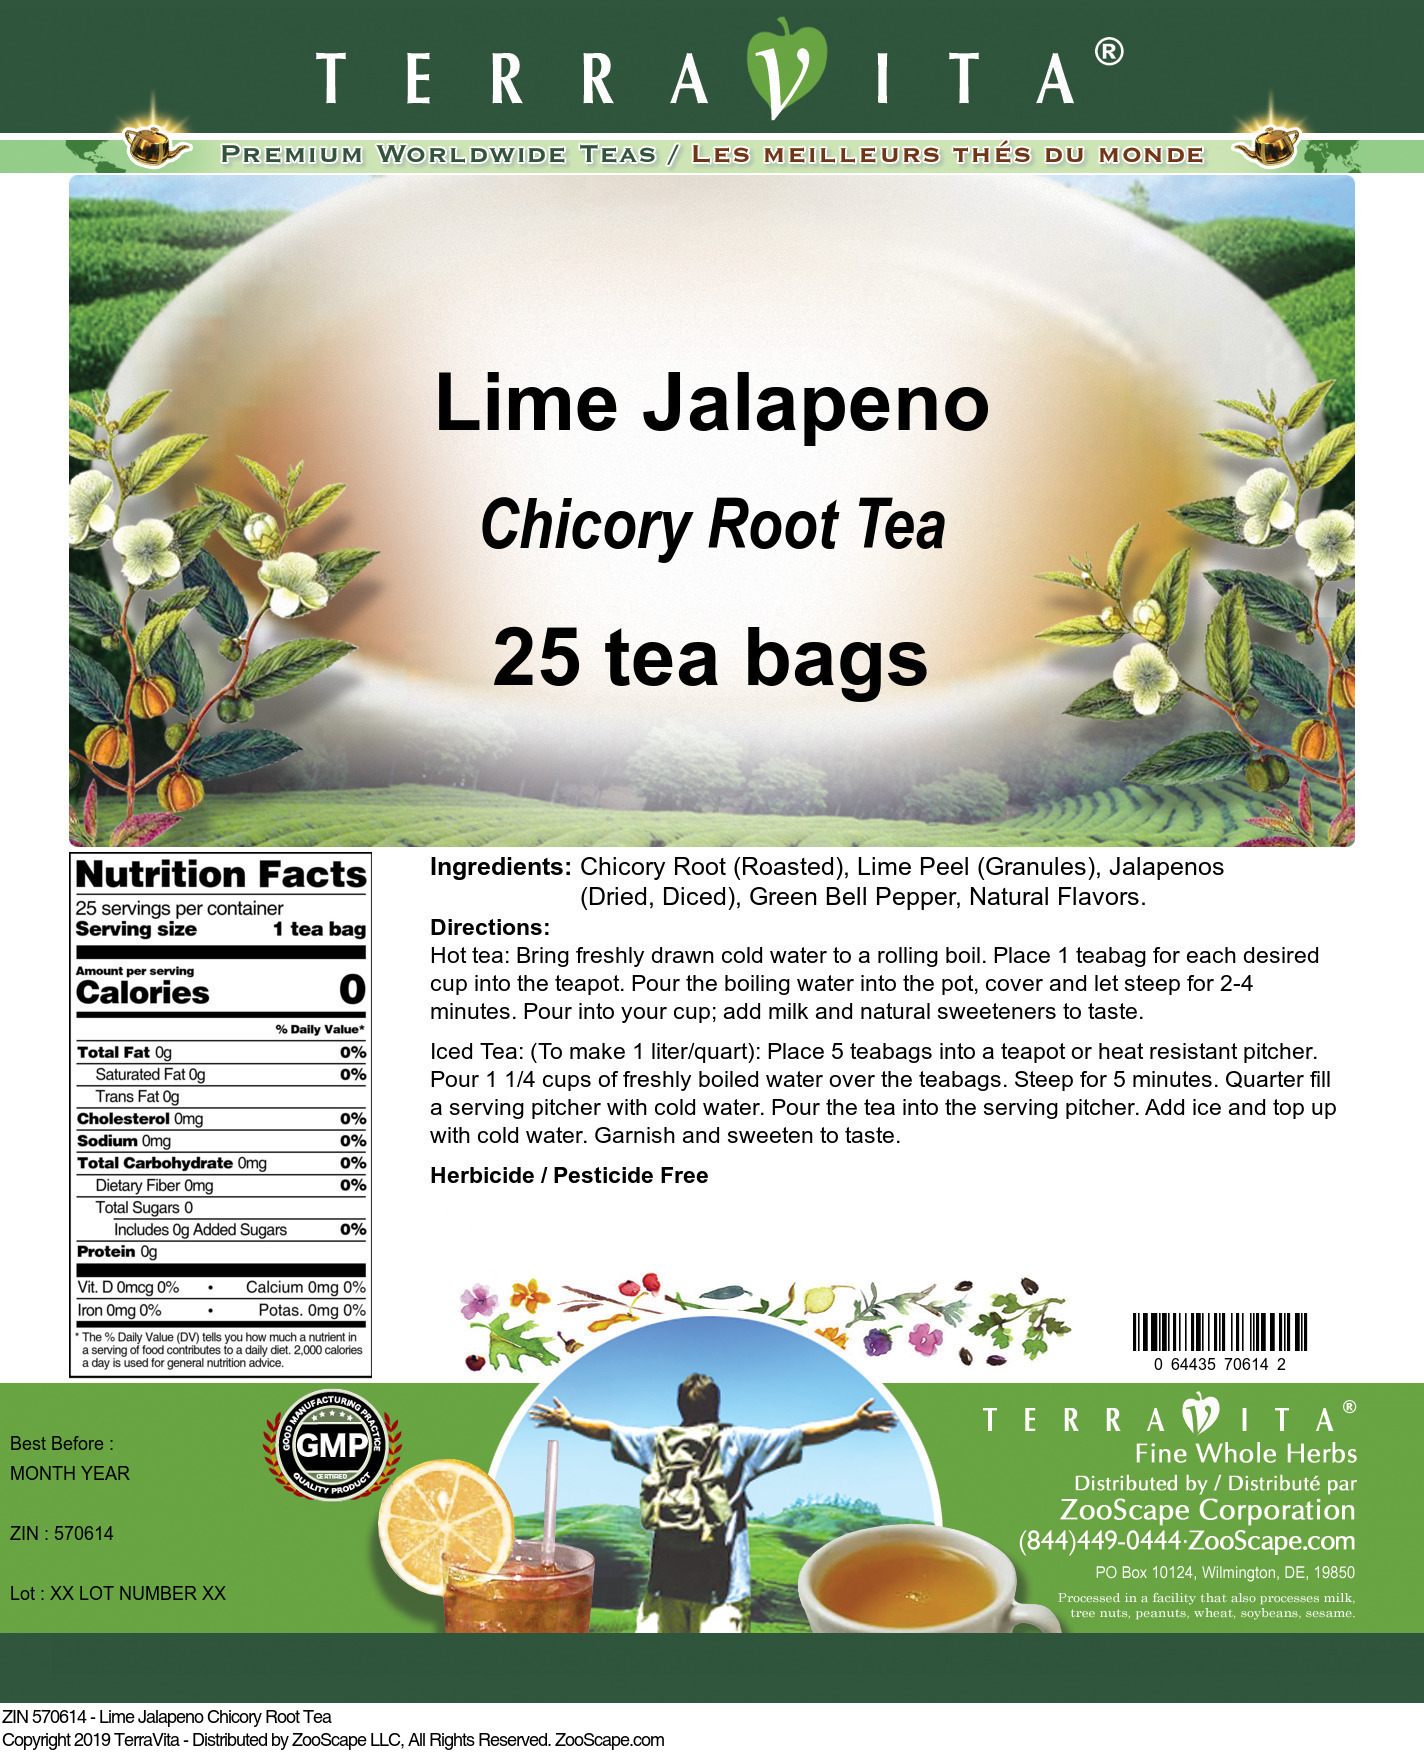 Lime Jalapeno Chicory Root